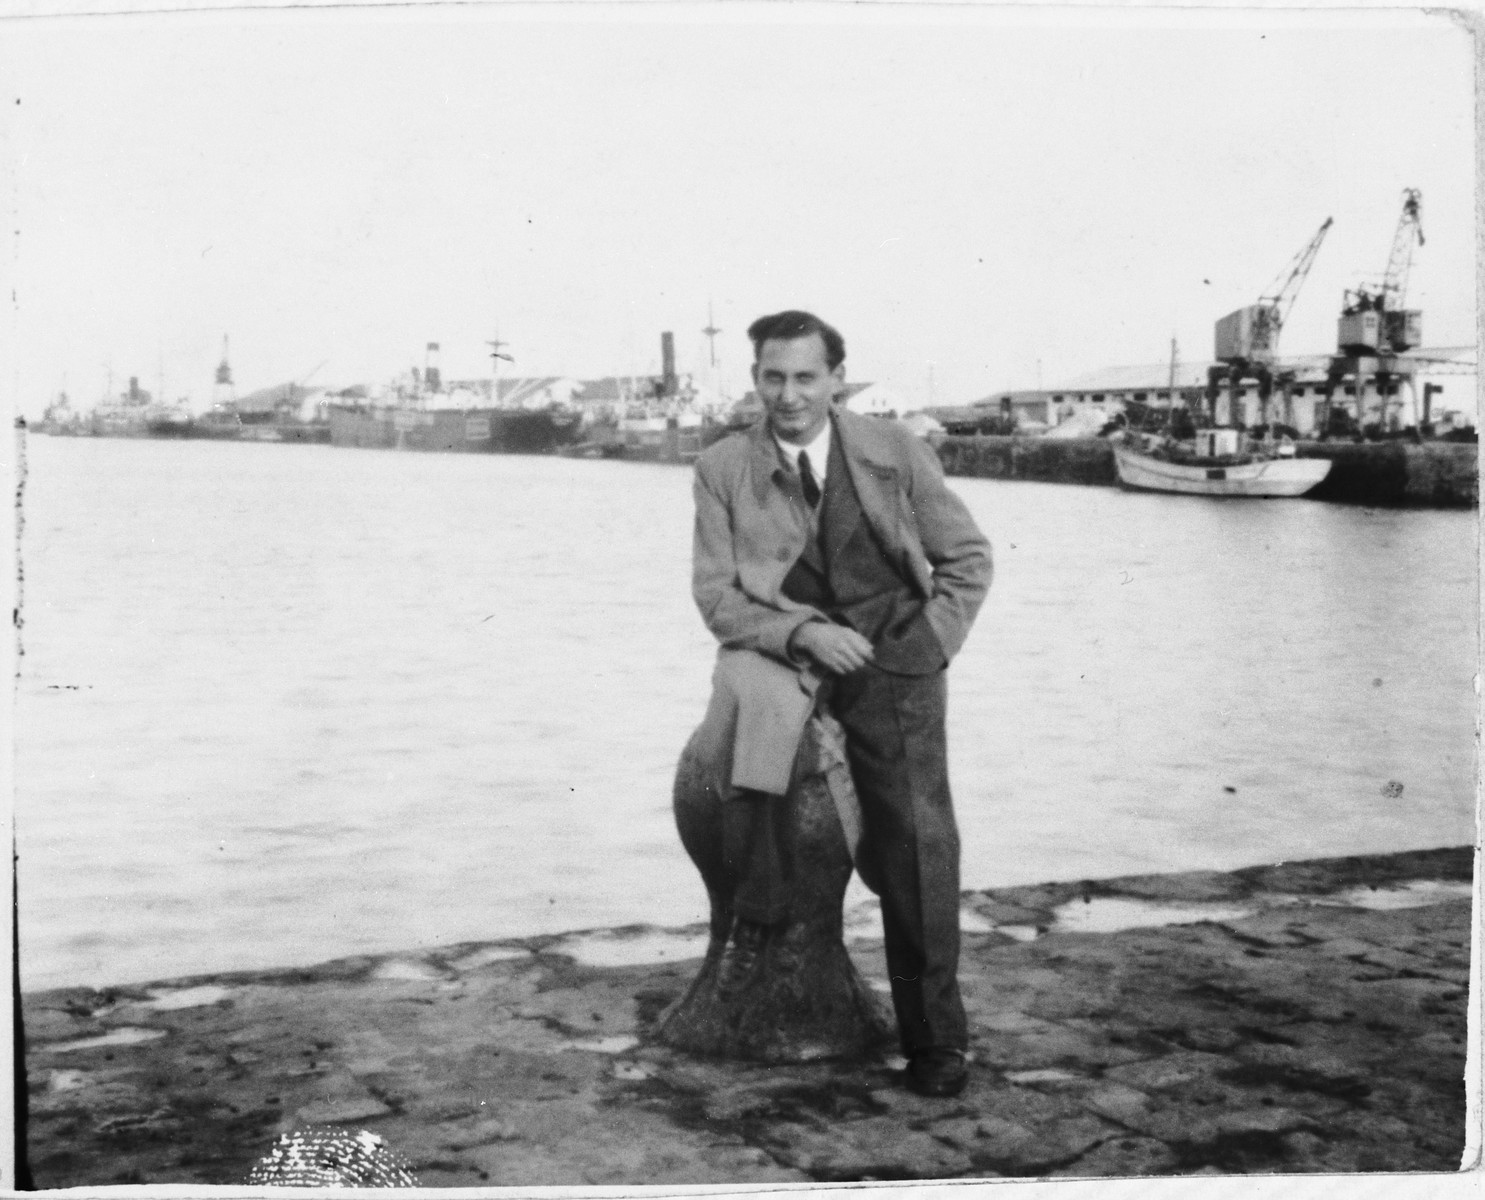 Jewish refugee Arthur Einhorn poses at the port of Cadiz before boarding the SS Nyassa for Palestine.